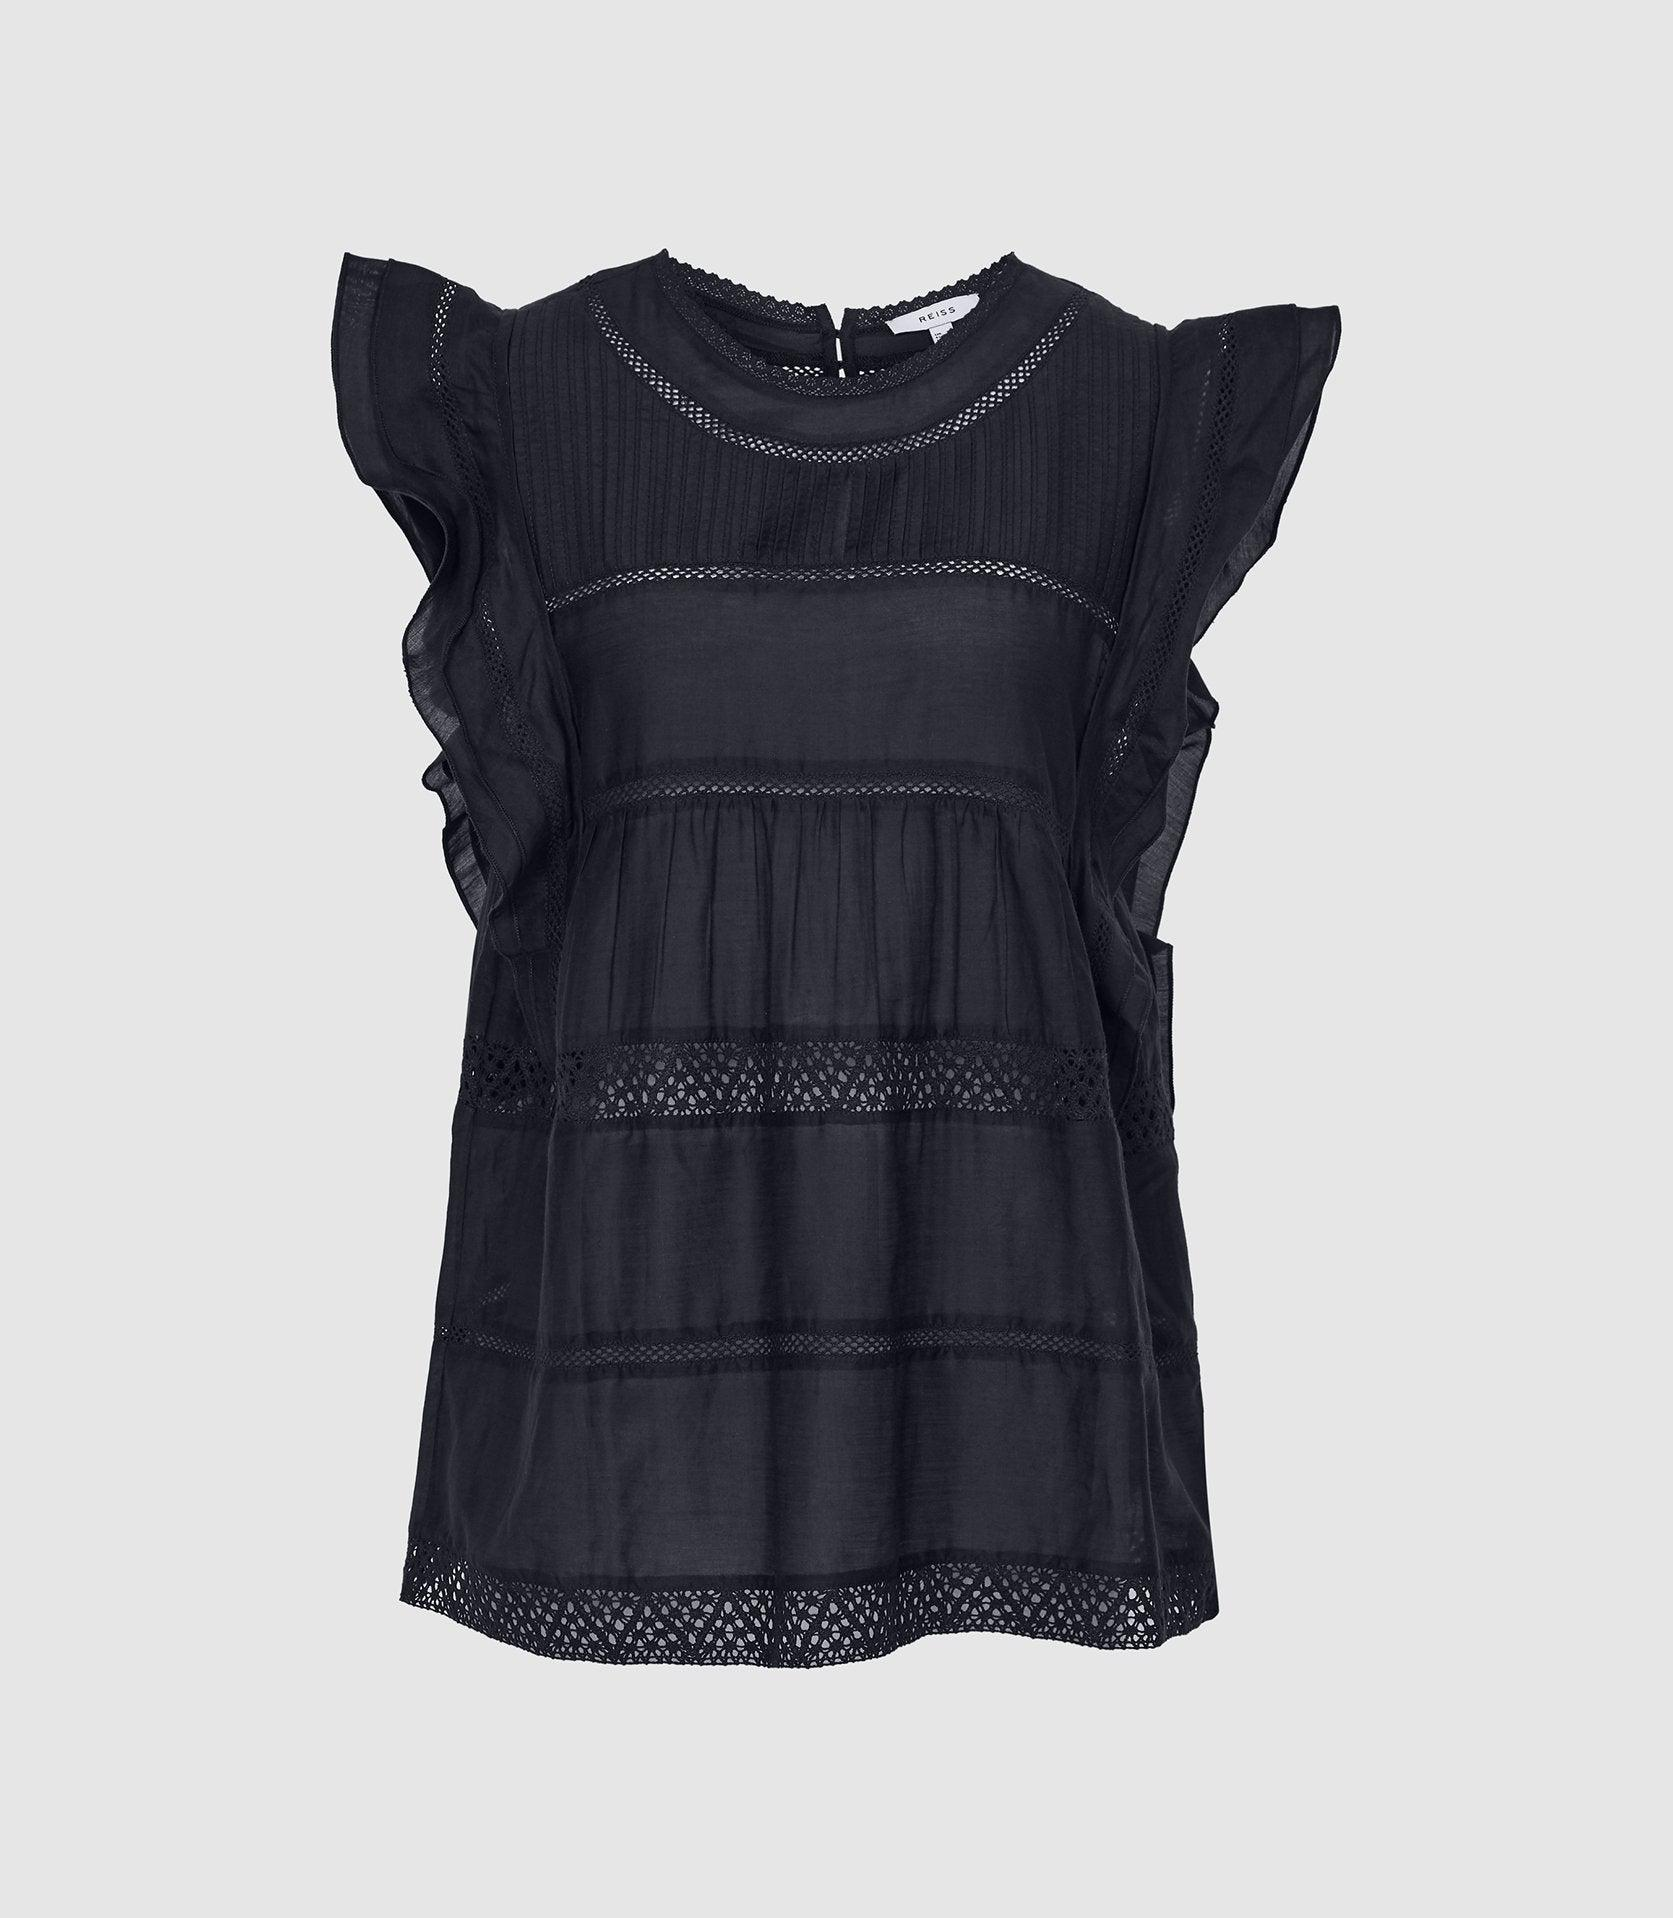 SIMONE - LACE DETAILED CAP SLEEVE TOP 5